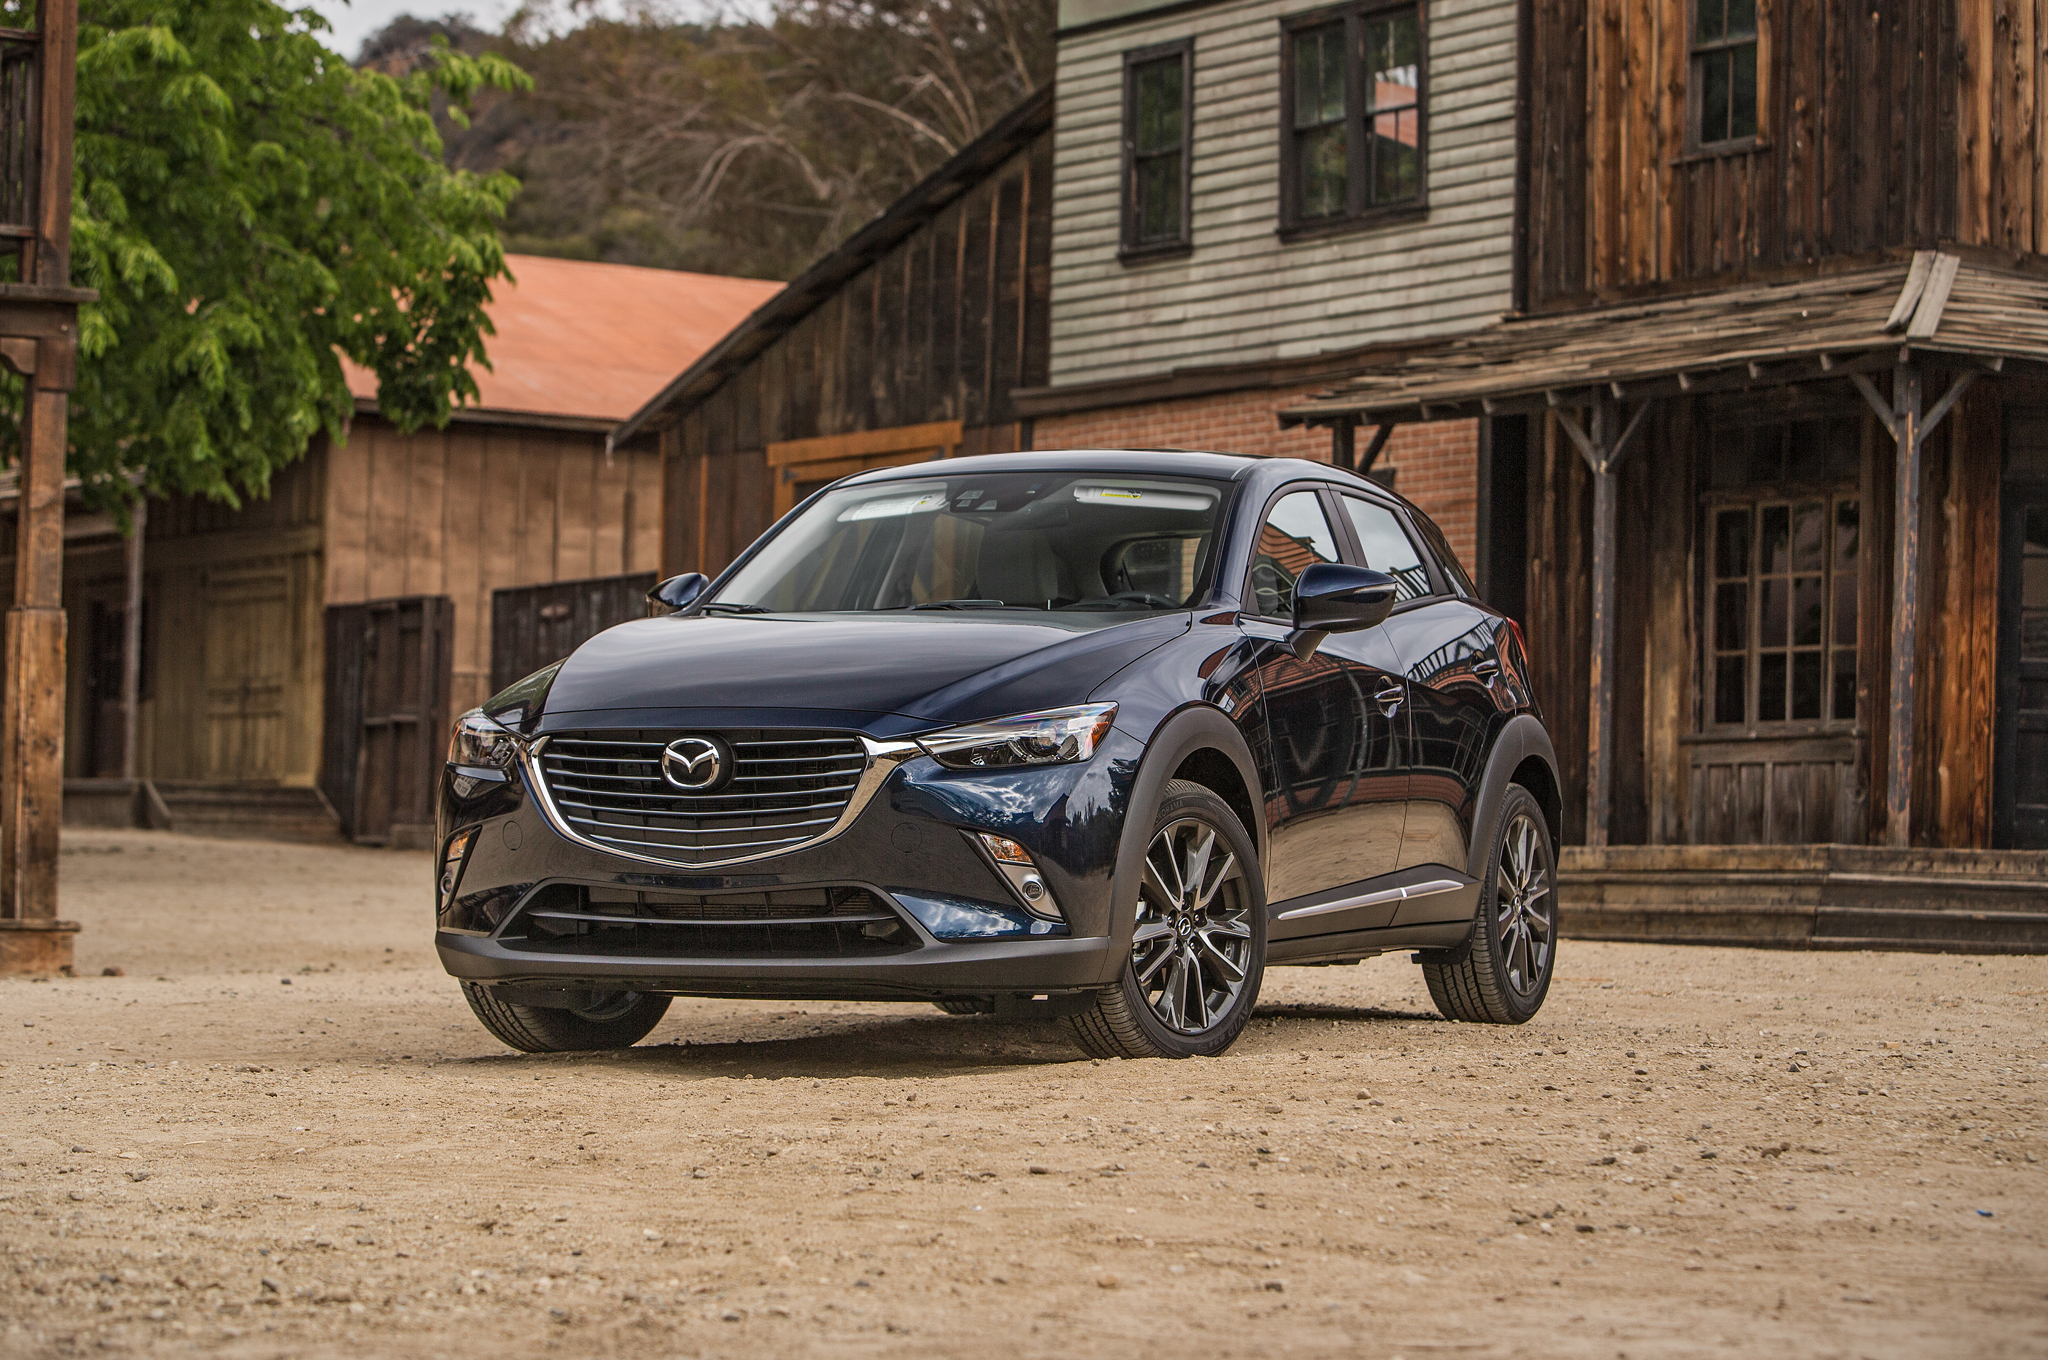 https://enthusiastnetwork.s3.amazonaws.com/uploads/sites/5/2015/06/2016-Mazda-CX-3-Grand-Touring-AWD-front-three-quarter.jpg?impolicy=entryimage